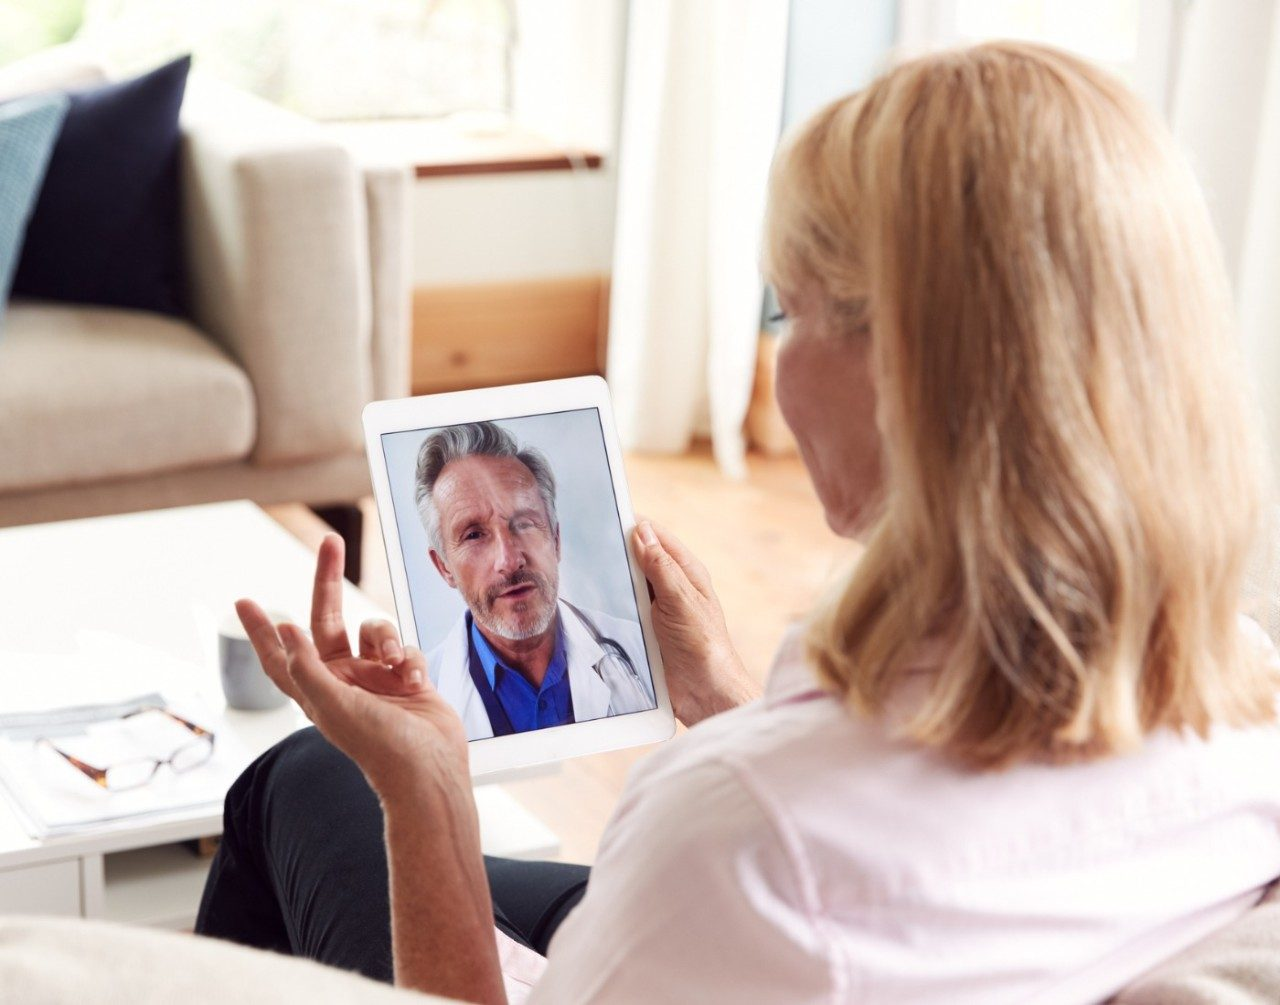 How to prep for telehealth